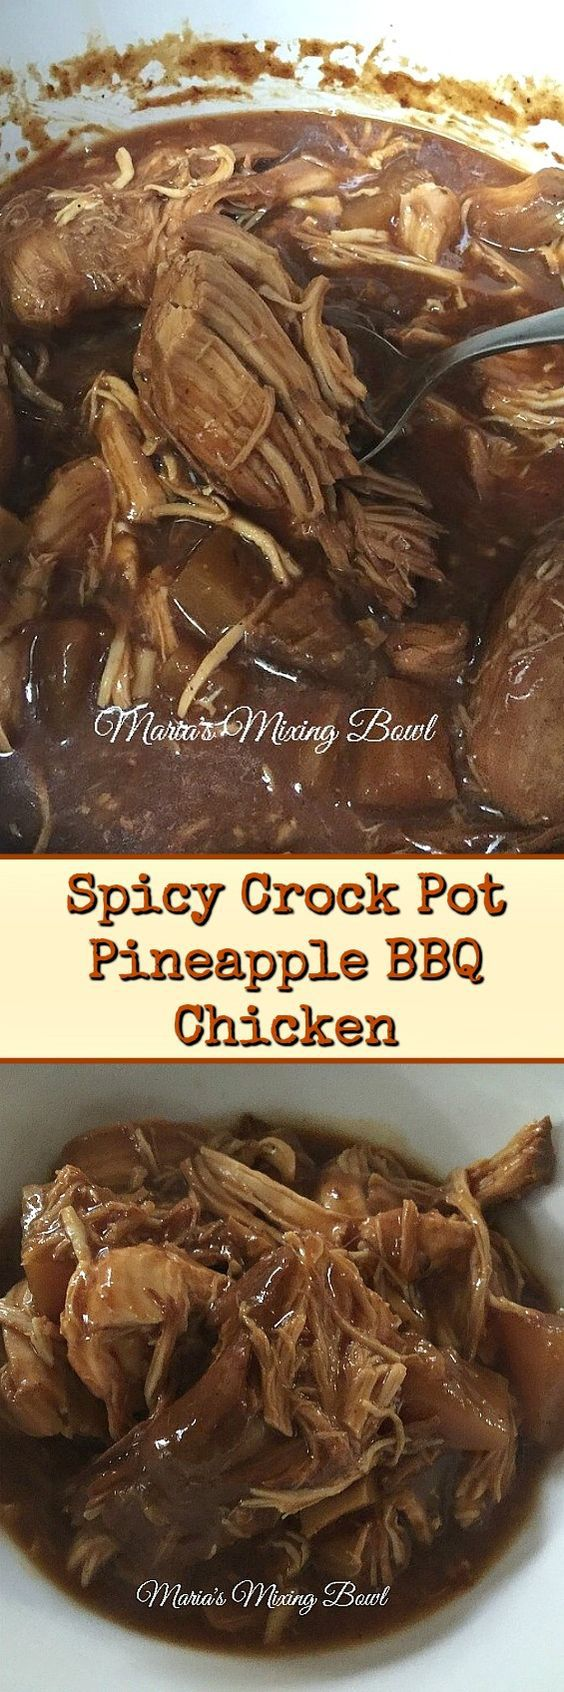 Spicy Crock Pot Pineapple BBQ Chicken - A delicious sweet and spicy meal that takes minutes to put together and is loved by everyone!